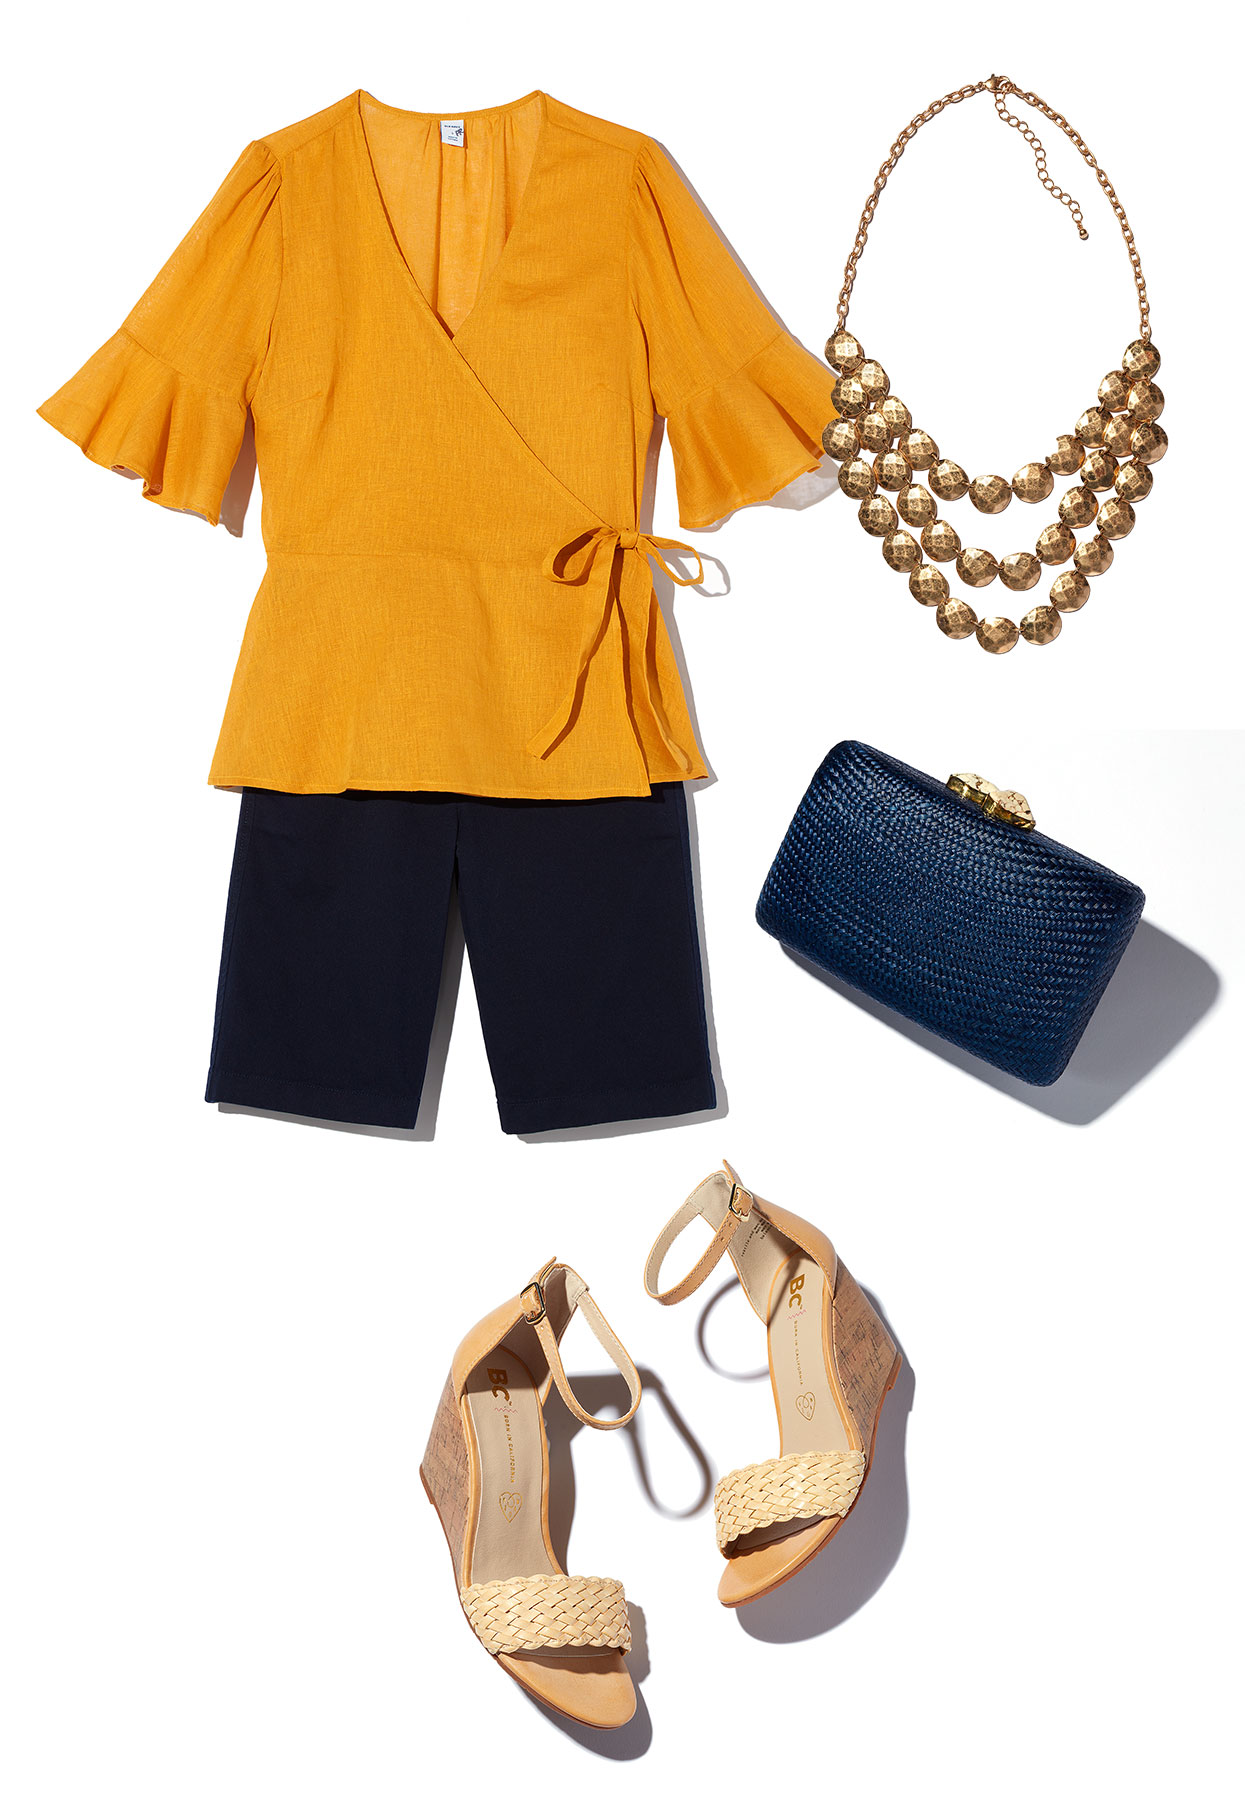 How to Style Bermuda Shorts: Clutch and Blouse